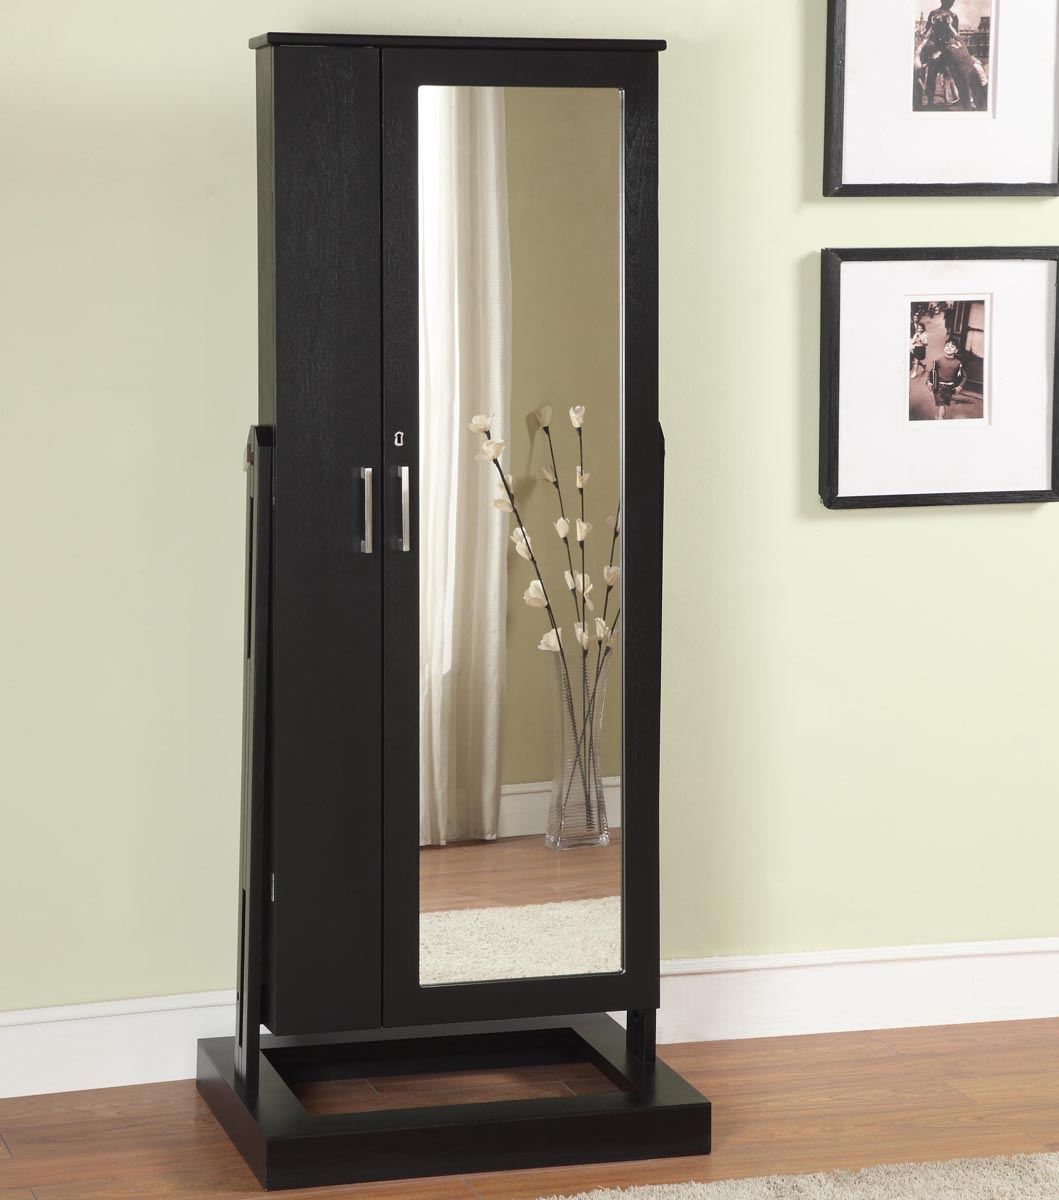 Accessories Delectable Furniture And Accessories For Bedroom And For Black Free Standing Mirror (Image 1 of 15)